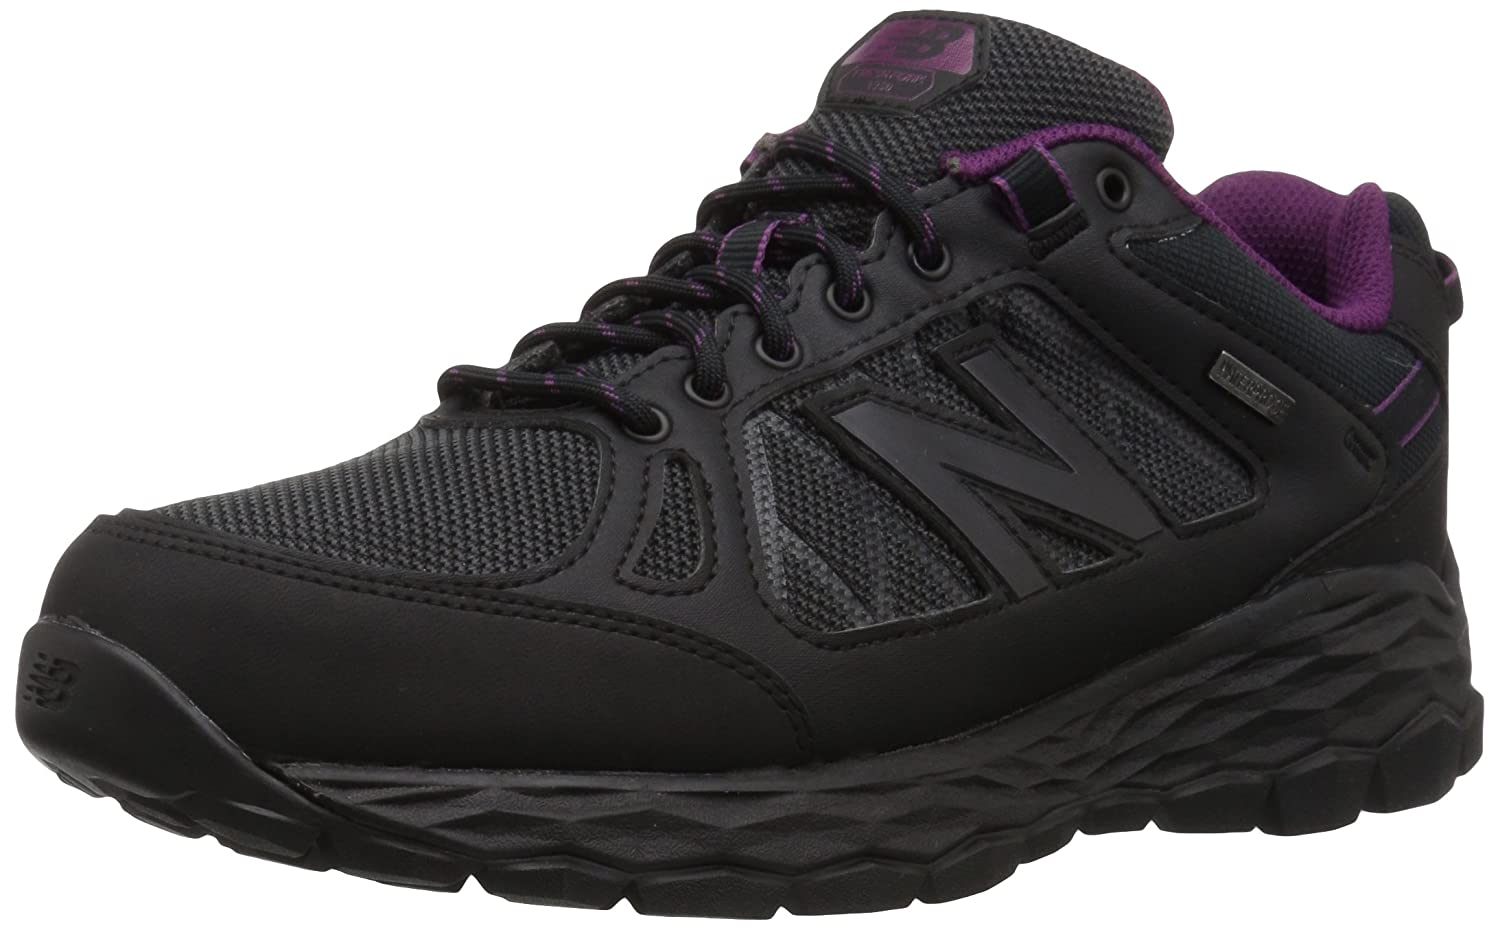 グランドセール [ニューバランス] Womens 1350W1 Womens Low Top Lace Up Running US B075R6YZW7 Sneaker [並行輸入品] B075R6YZW7 ブラック 12 D US 12 D US|ブラック, メガLED:01148033 --- fitnessmarathi.com